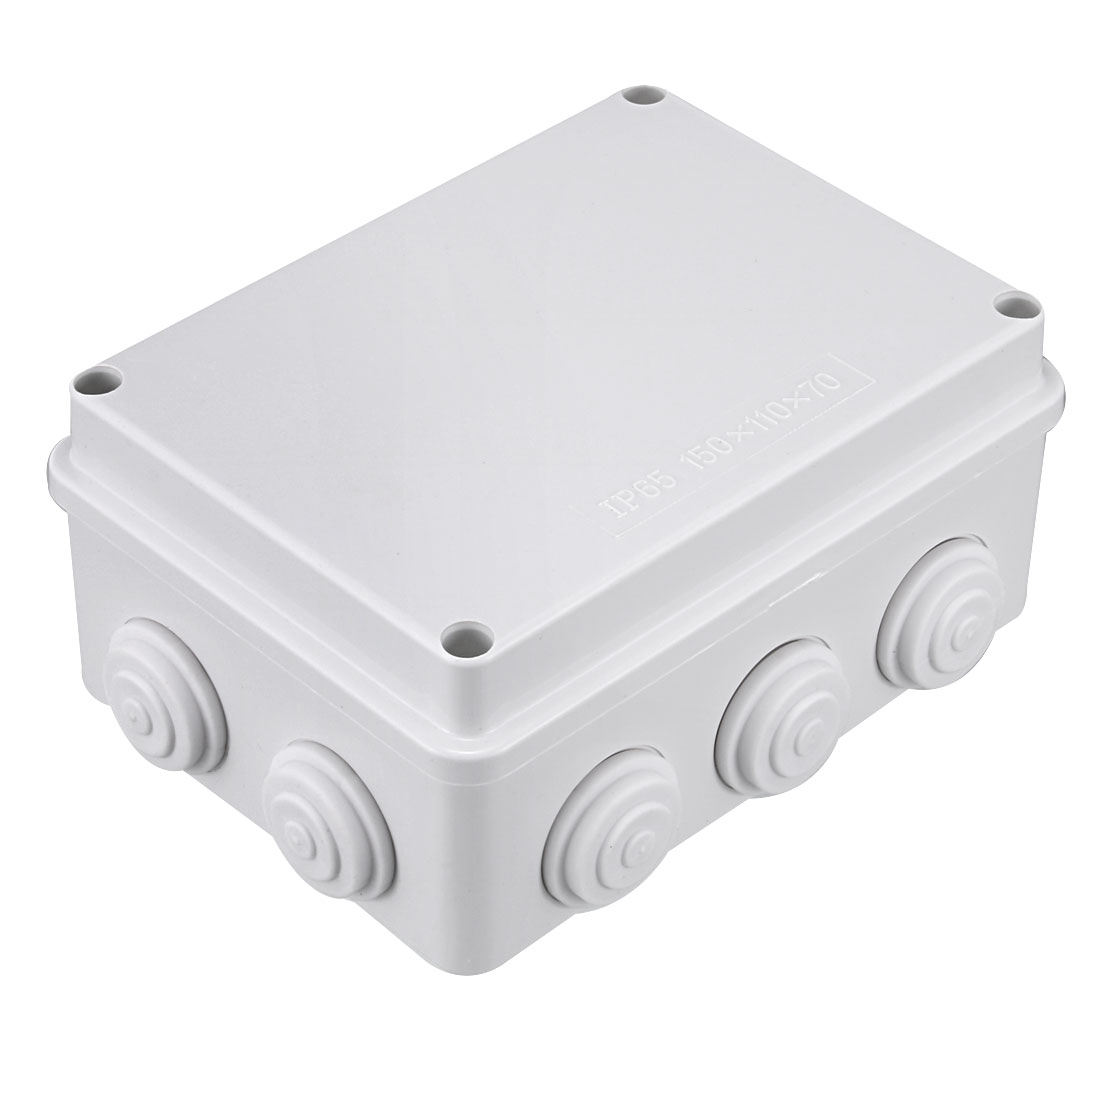 153 x 112 x 70mm Electronic Plastic DIY Junction Box Enclosure Case White